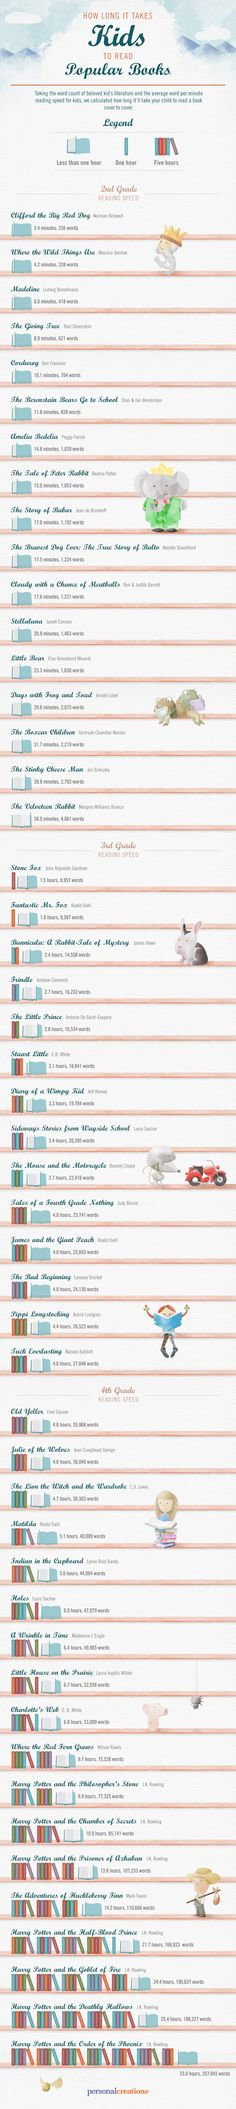 How Long It Takes Kids to Read Popular Books #infographic #Books #Education